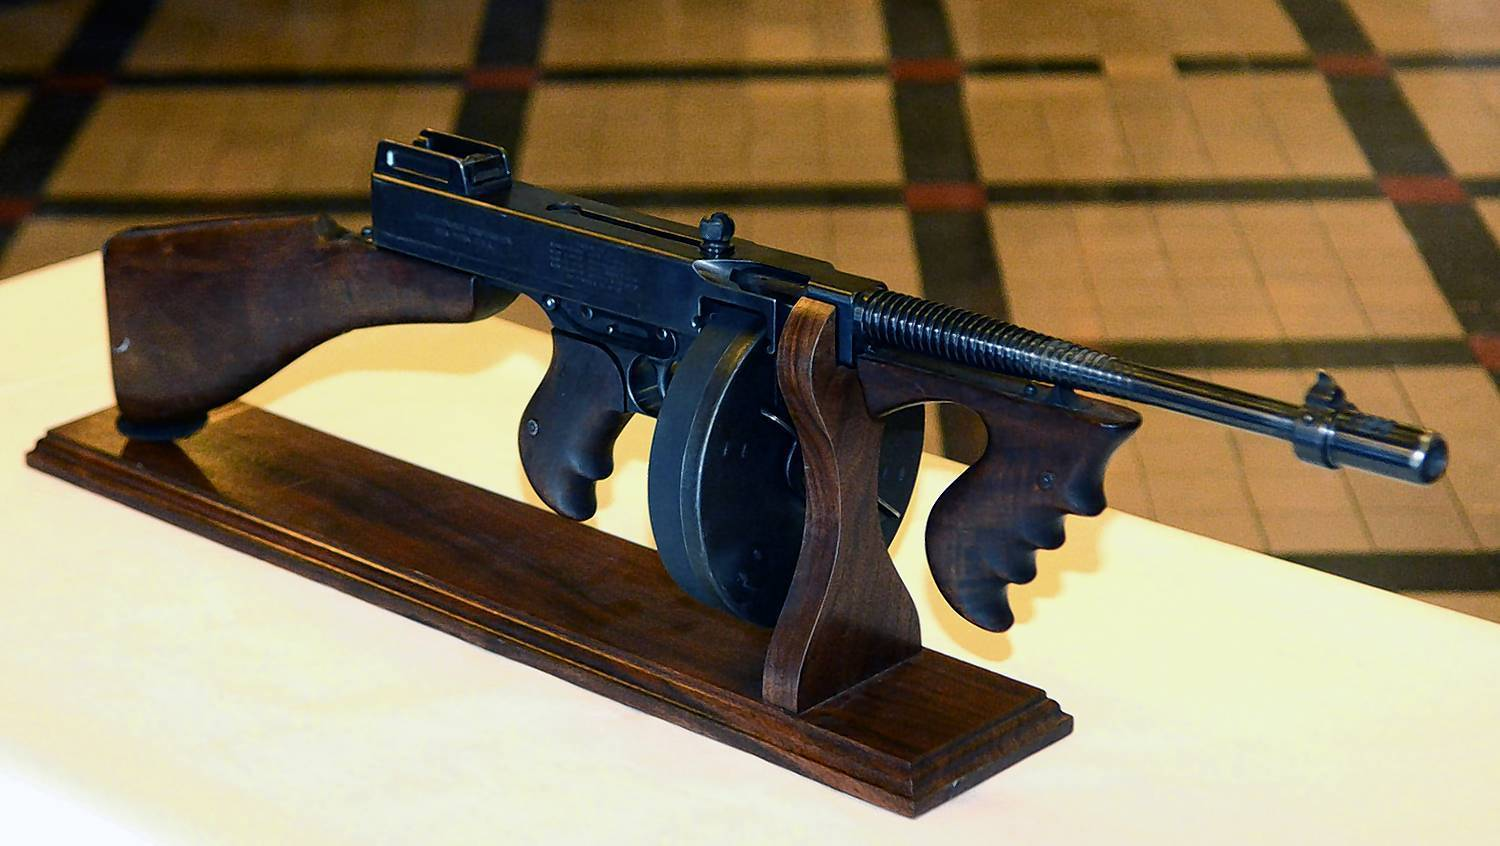 A Thompson sub-machine gun, stolen by John Dillinger's gang in 1933, was returned to Auburn in Dekalb County, Indiana.